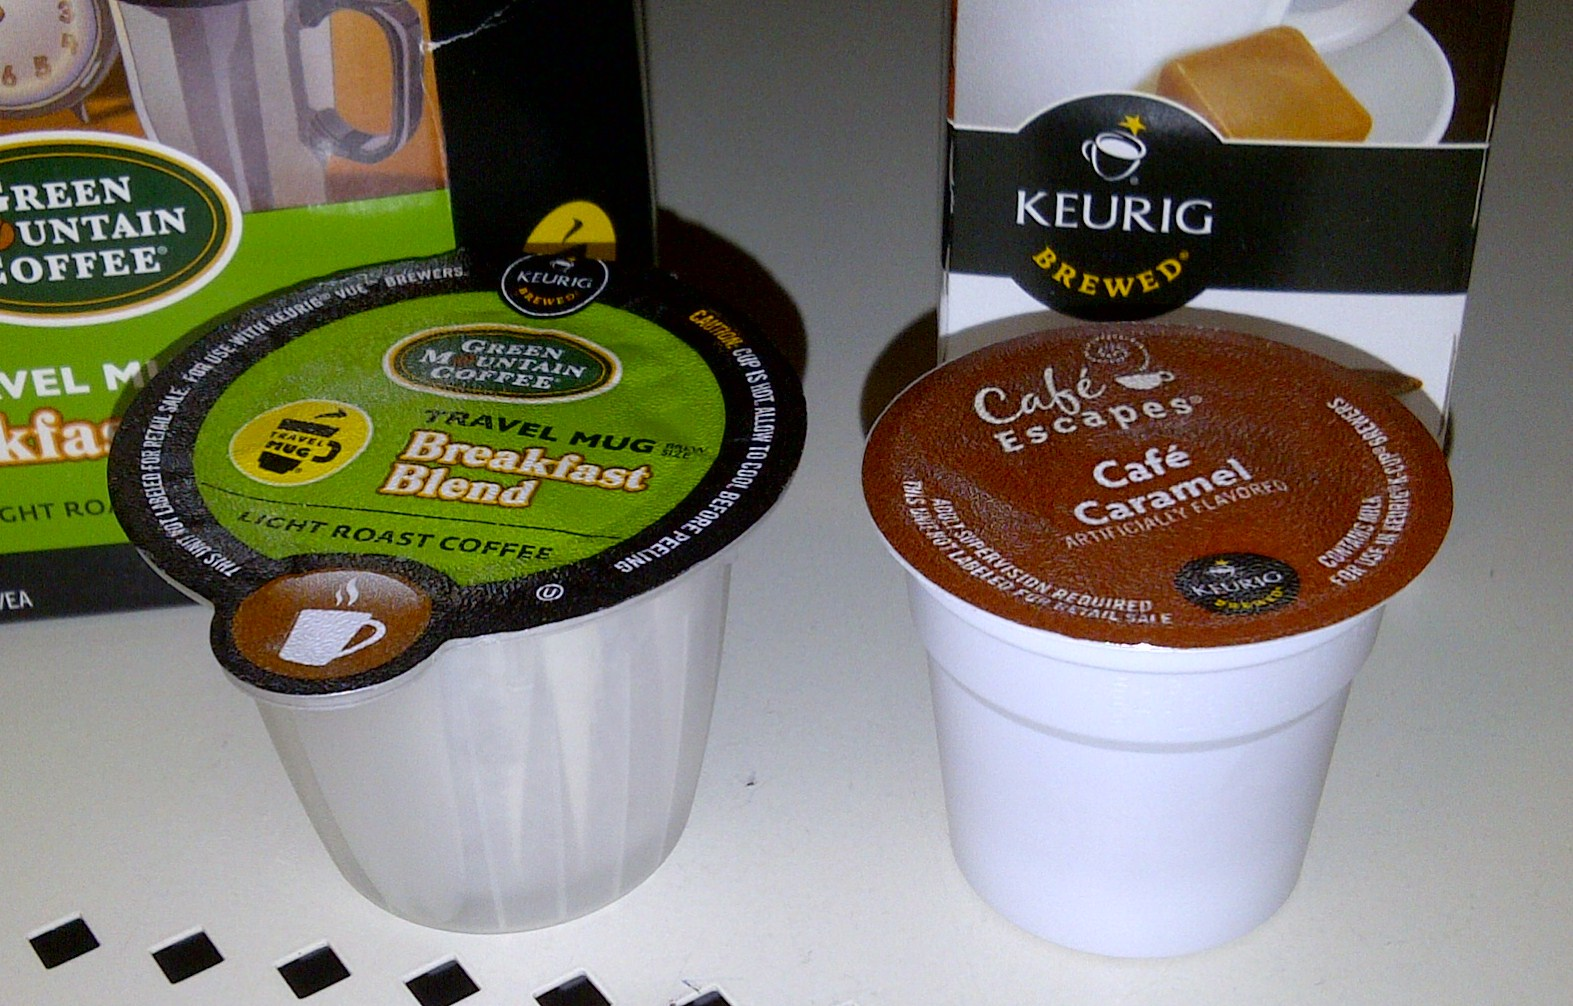 shows a vue pack next to a kcup for size comparision - Keurig Coffee Pods